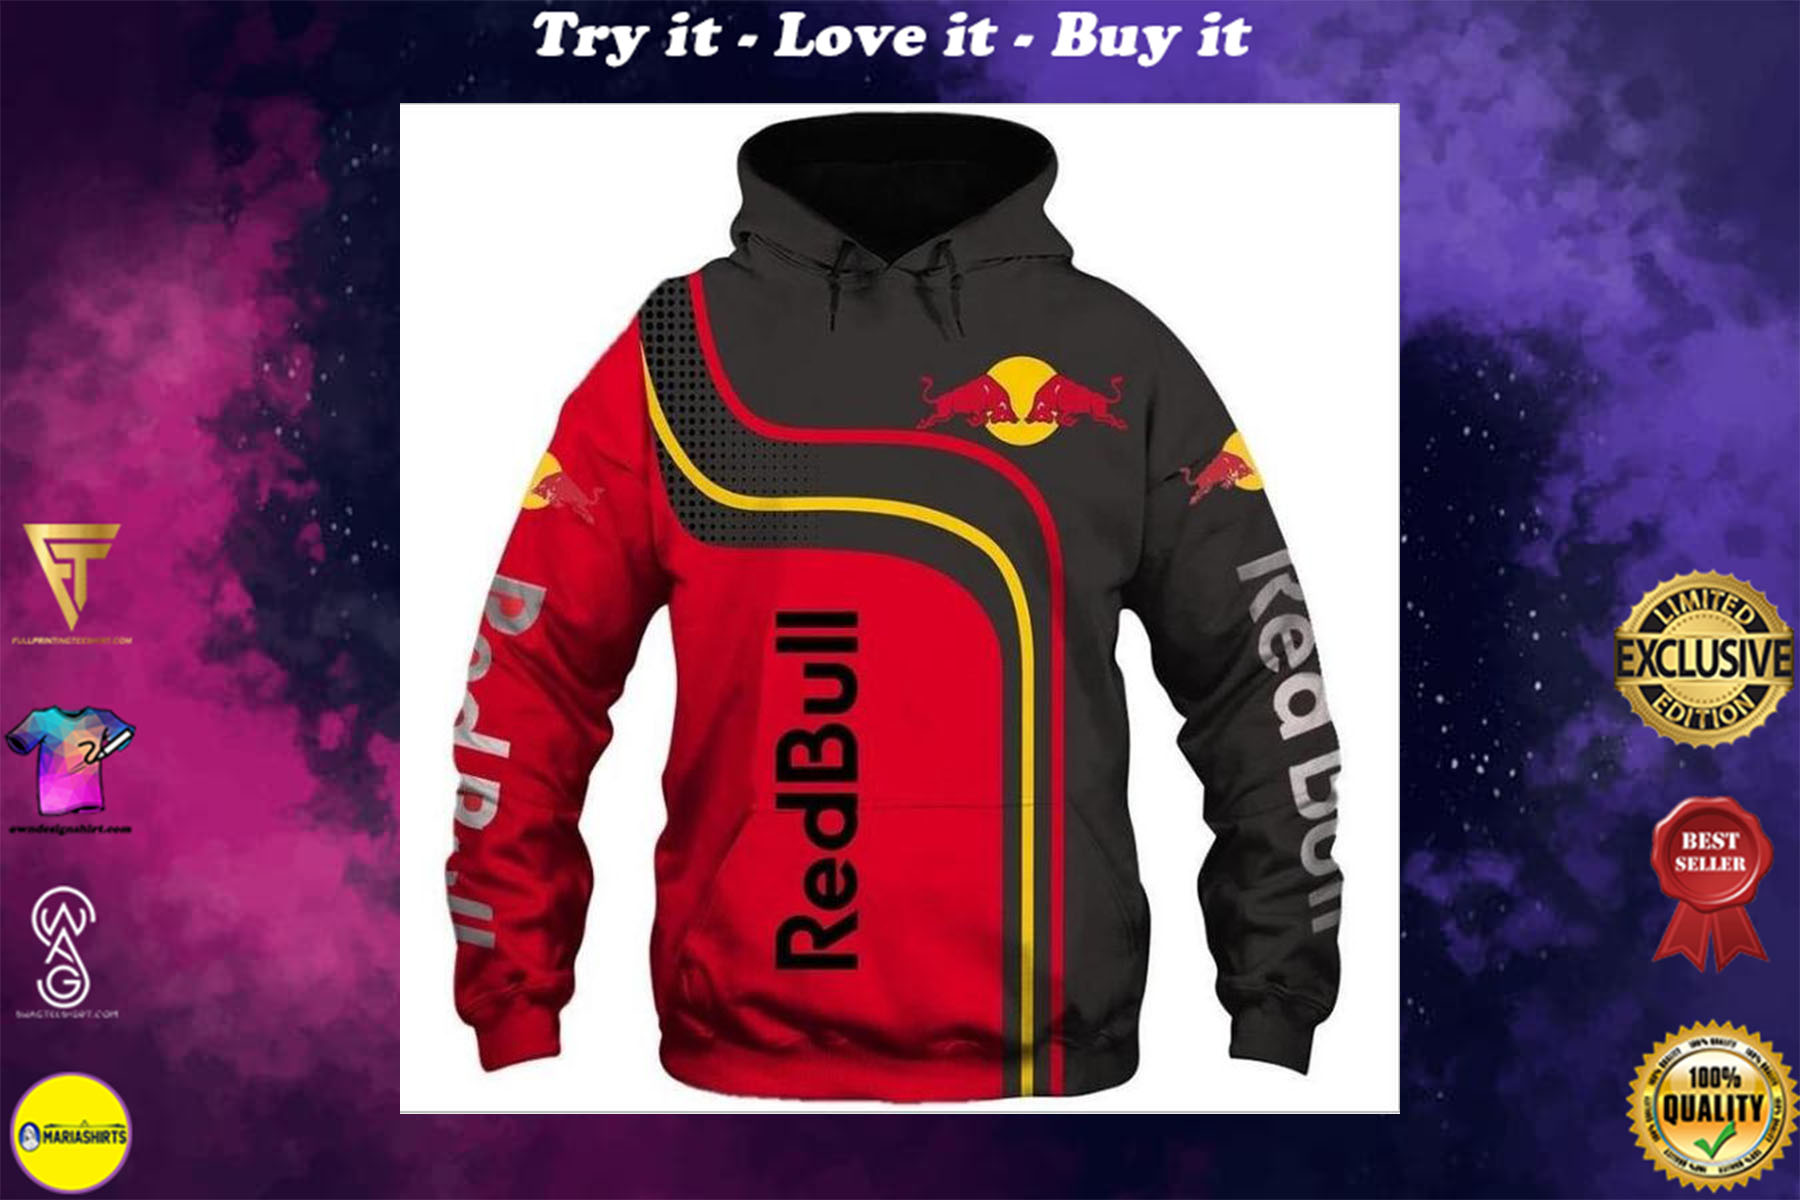 [special edition] red bull energy drink racing full printing shirt - maria